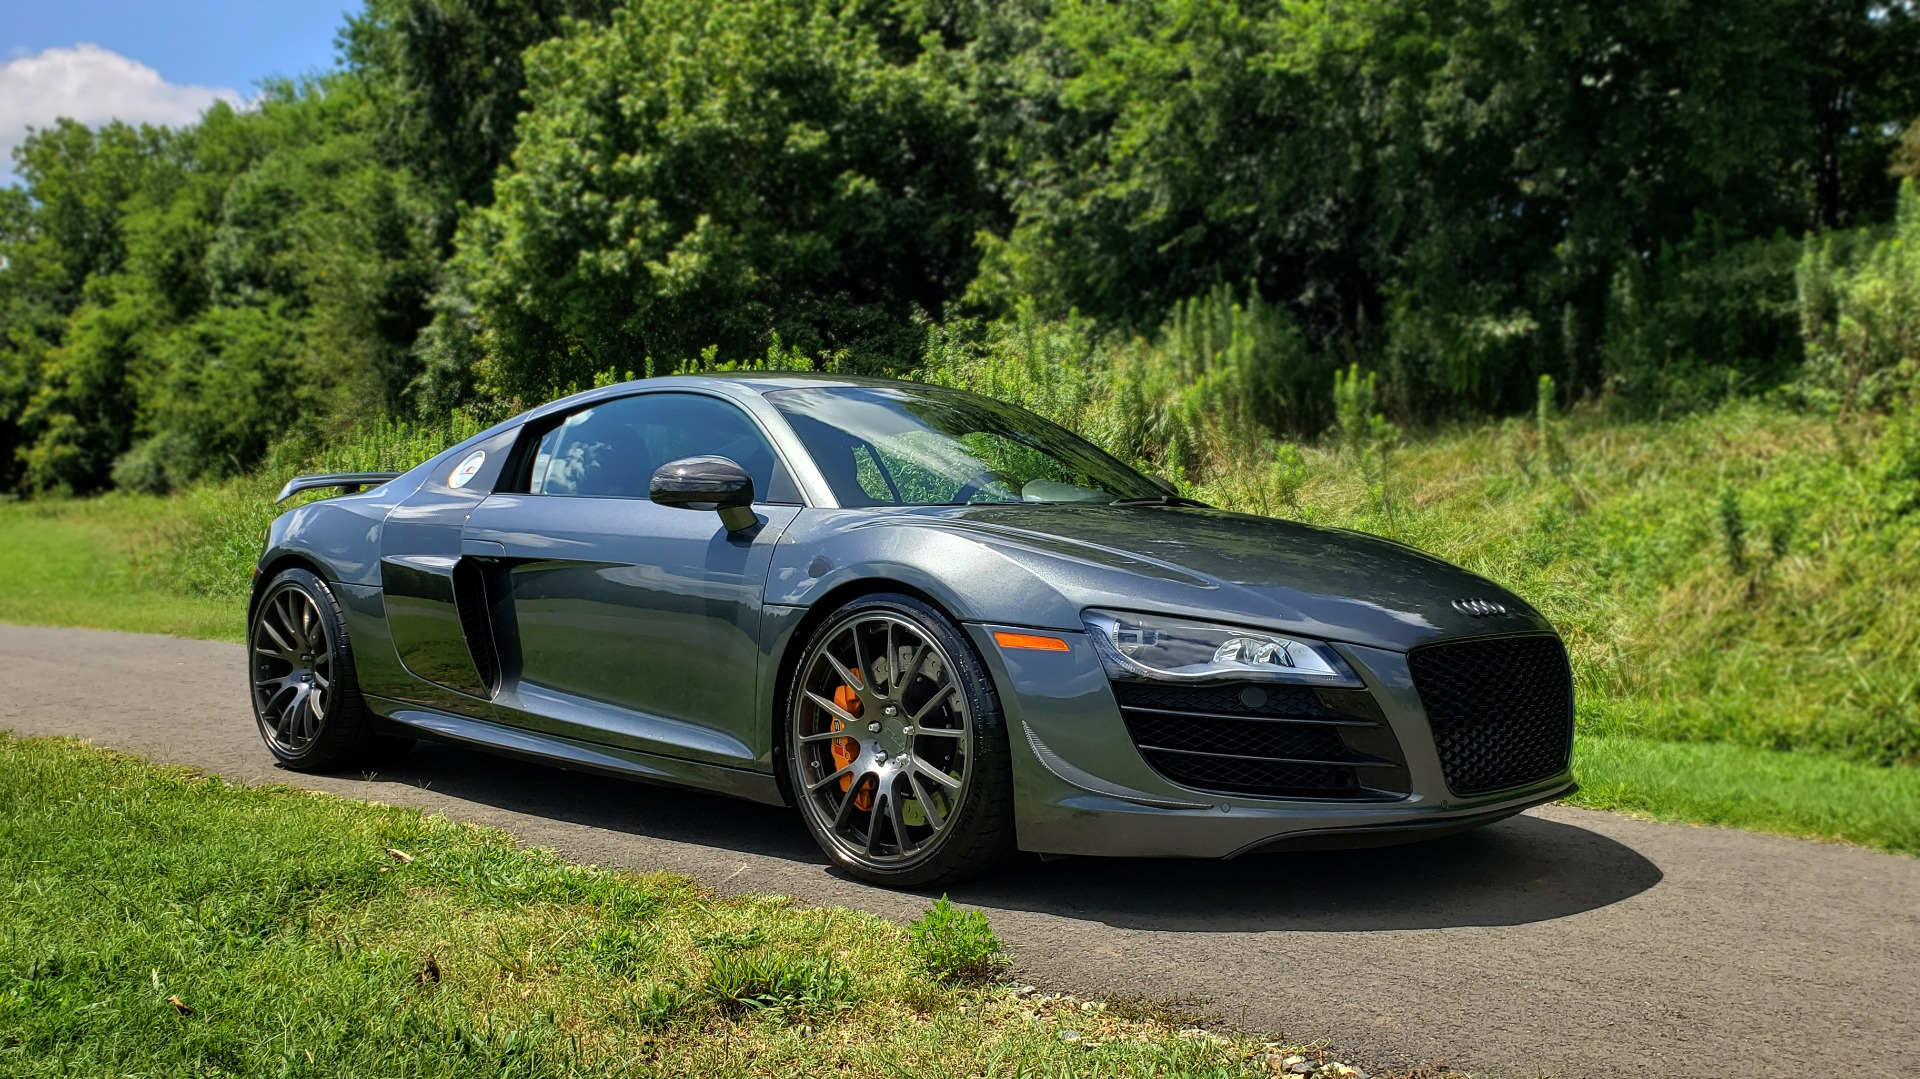 Used 2010 Audi R8 5.2L V10 SUPERCHARGED / AWD / COUPE / CUSTOM TUNED for sale $82,795 at Formula Imports in Charlotte NC 28227 6